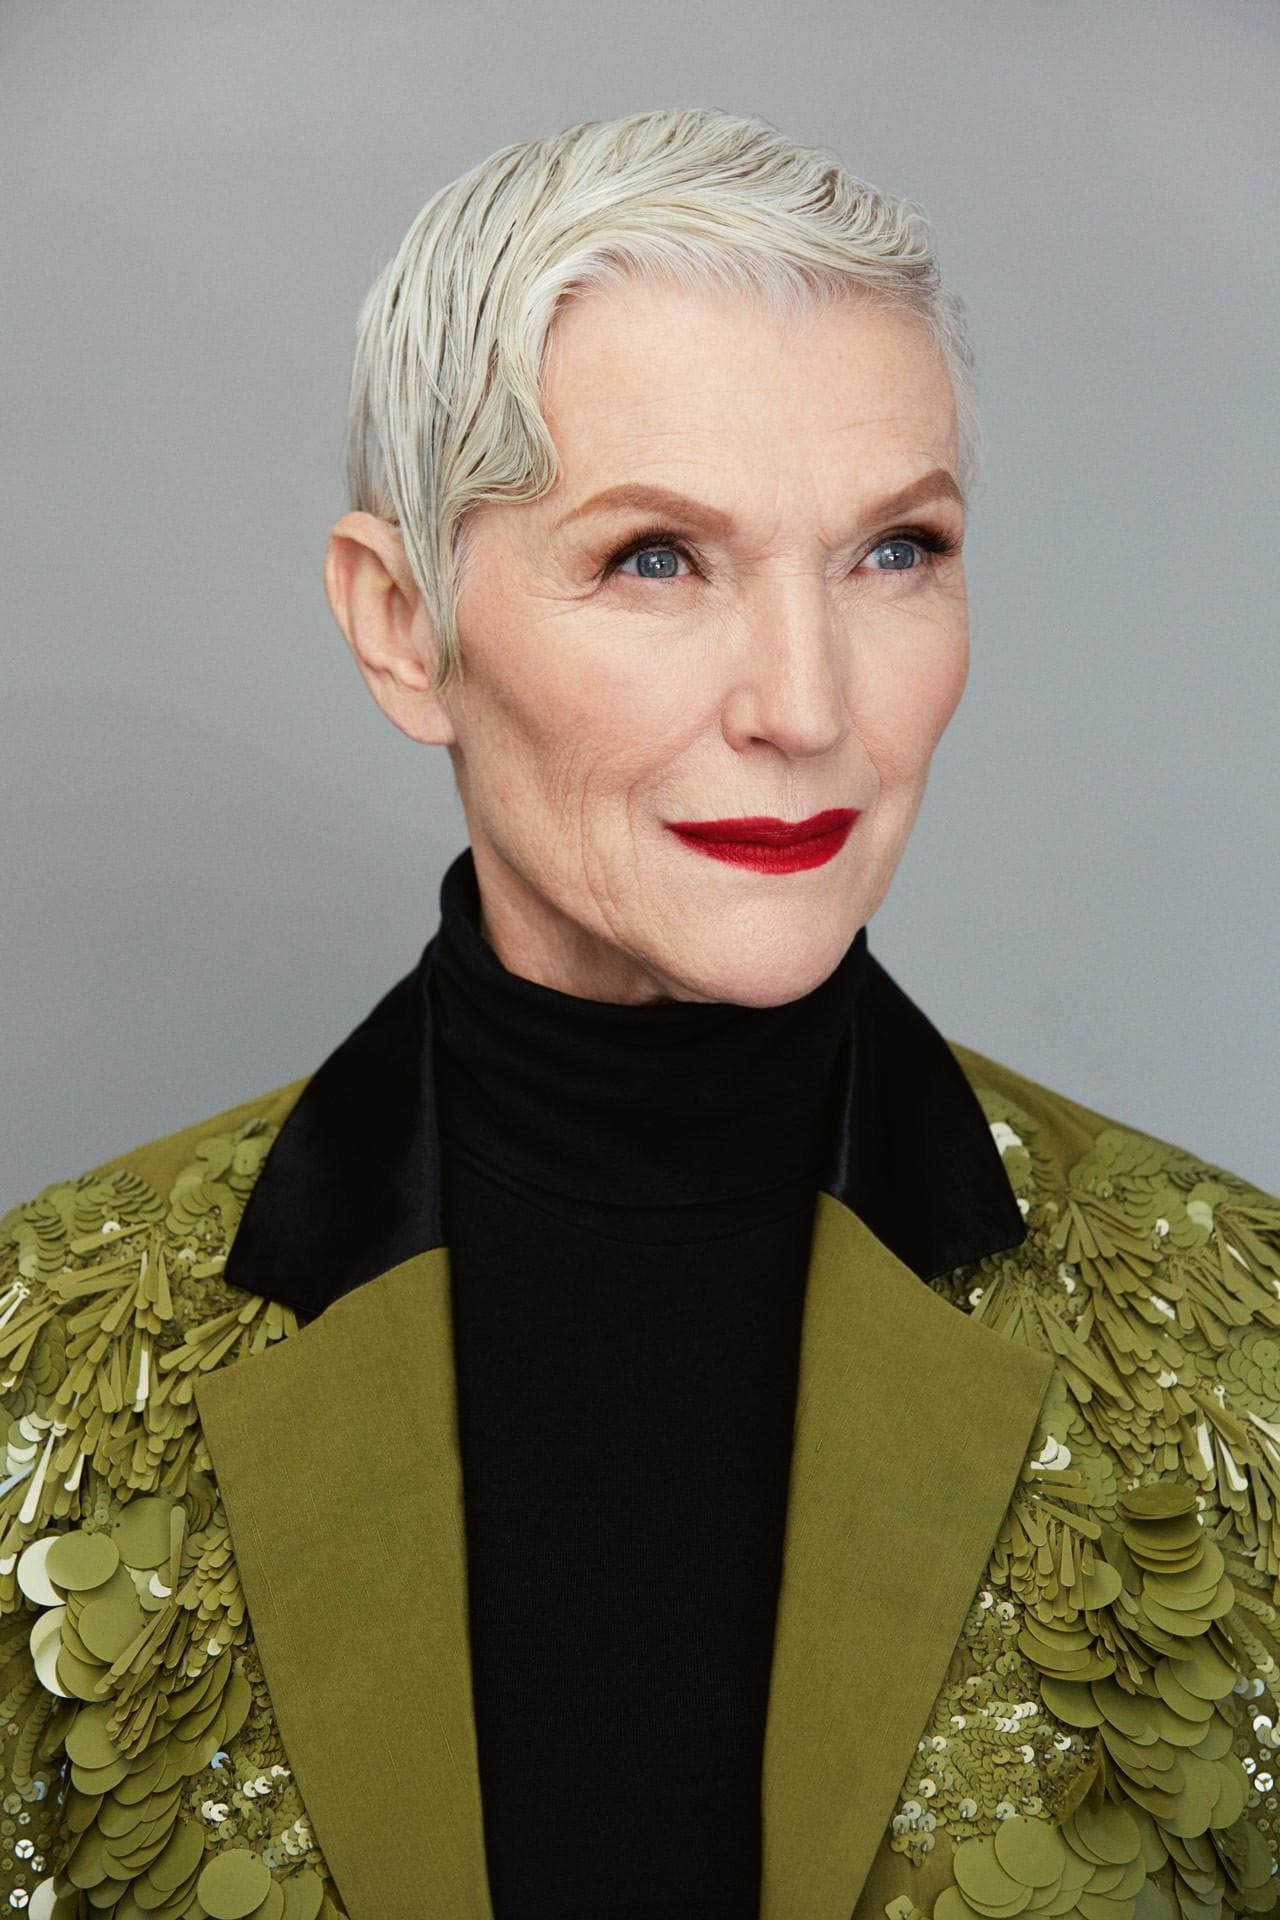 70-year-old model Maye Musk on challenging our beauty preconceptions